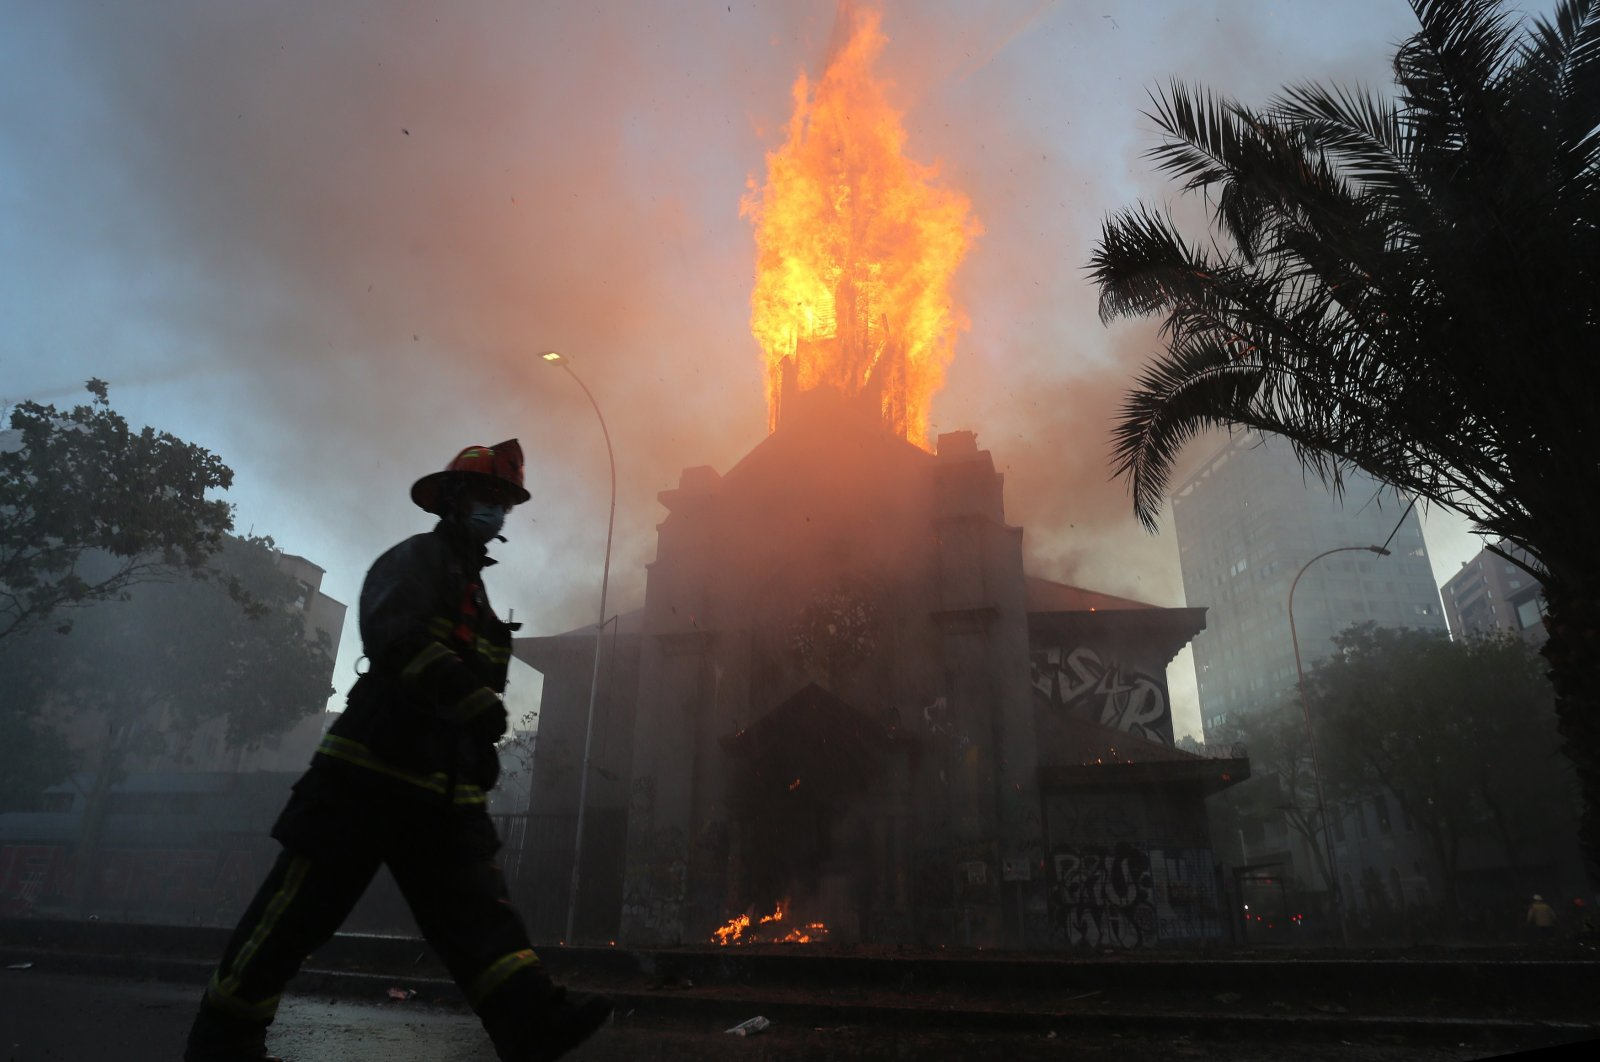 Firefighters work to extinguish a fire near Plaza Italia in the parish of La Asuncion, in the aftermath of a protest in Santiago, Chile, Oct. 18, 2020. (EPA Photo)